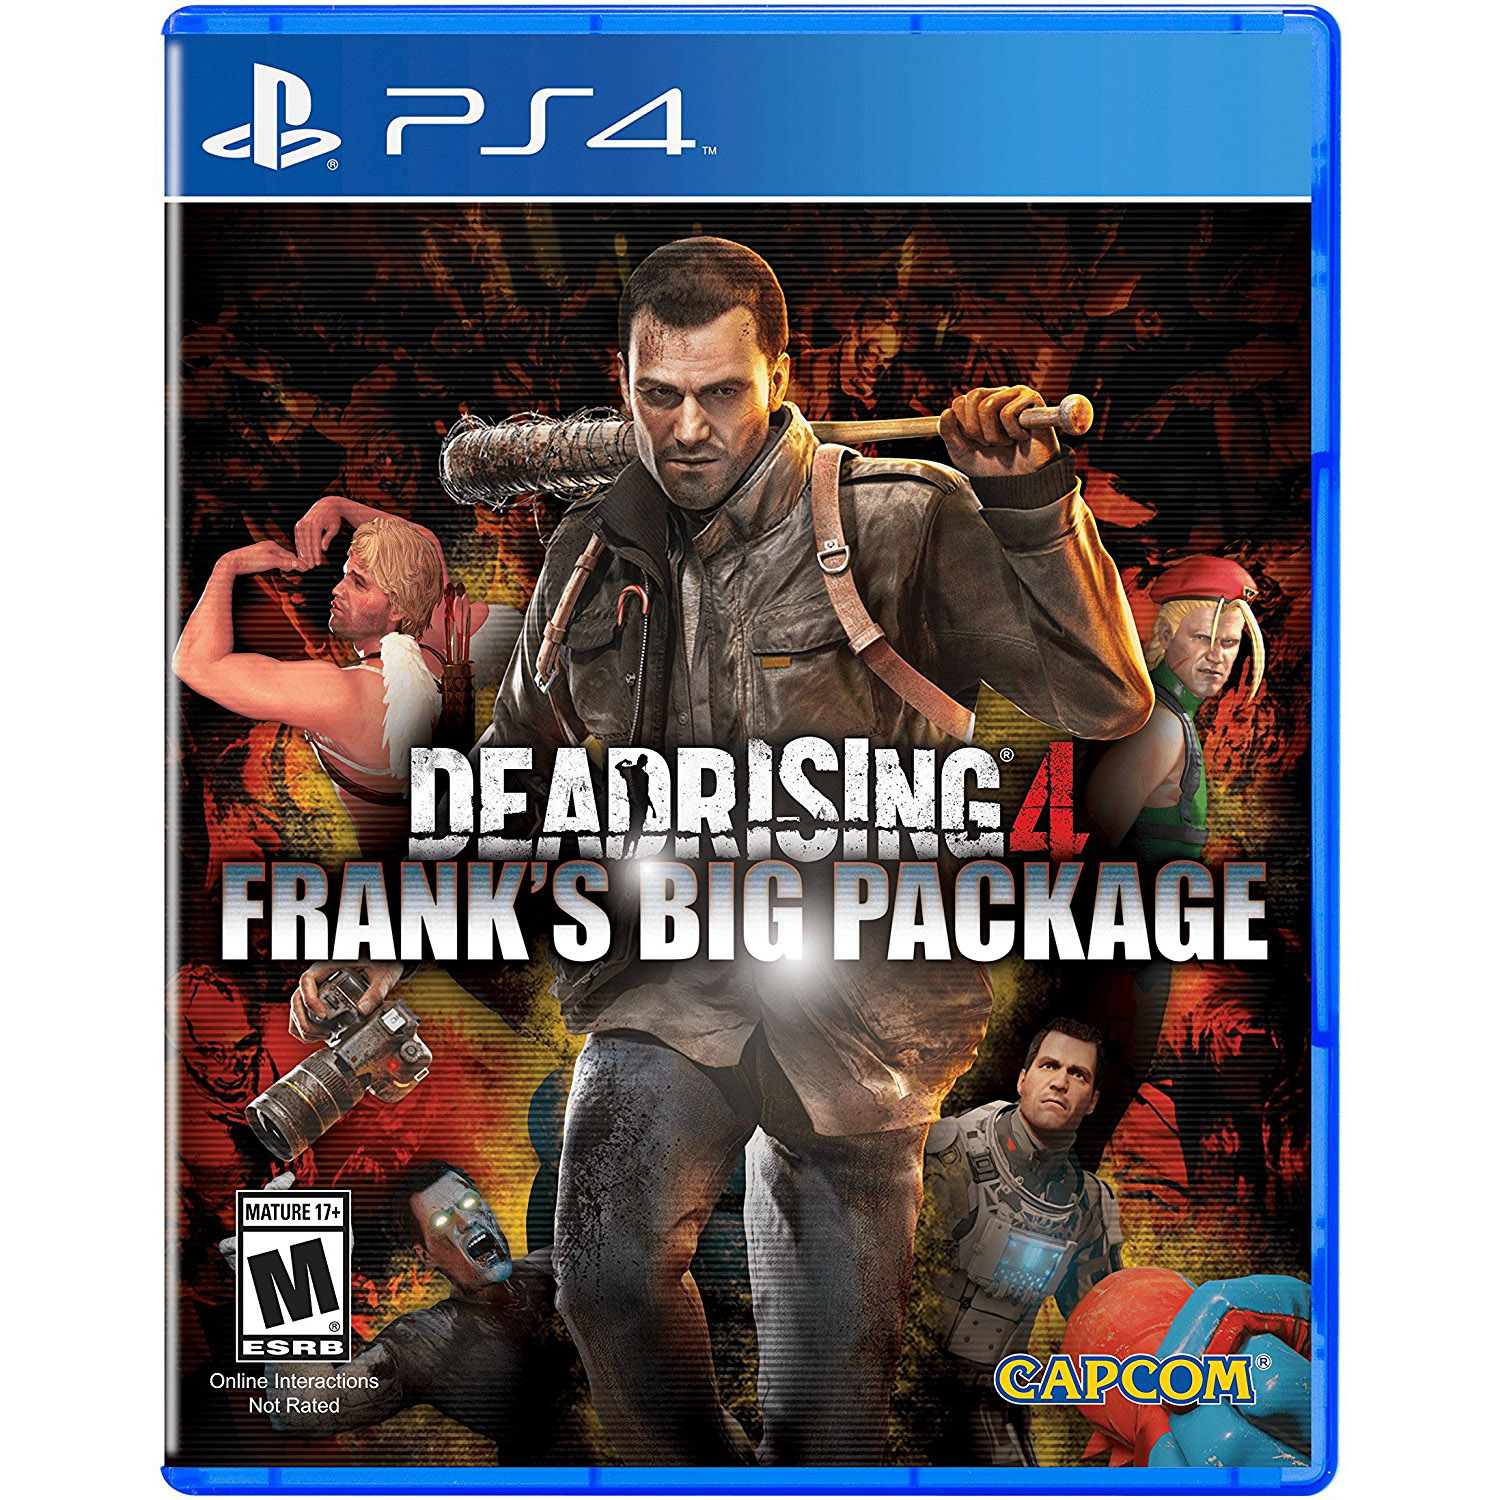 Dead Rising 4: Frank's Big Package, Capcom, PlayStation 4, REFURBISHED/PREOWNED